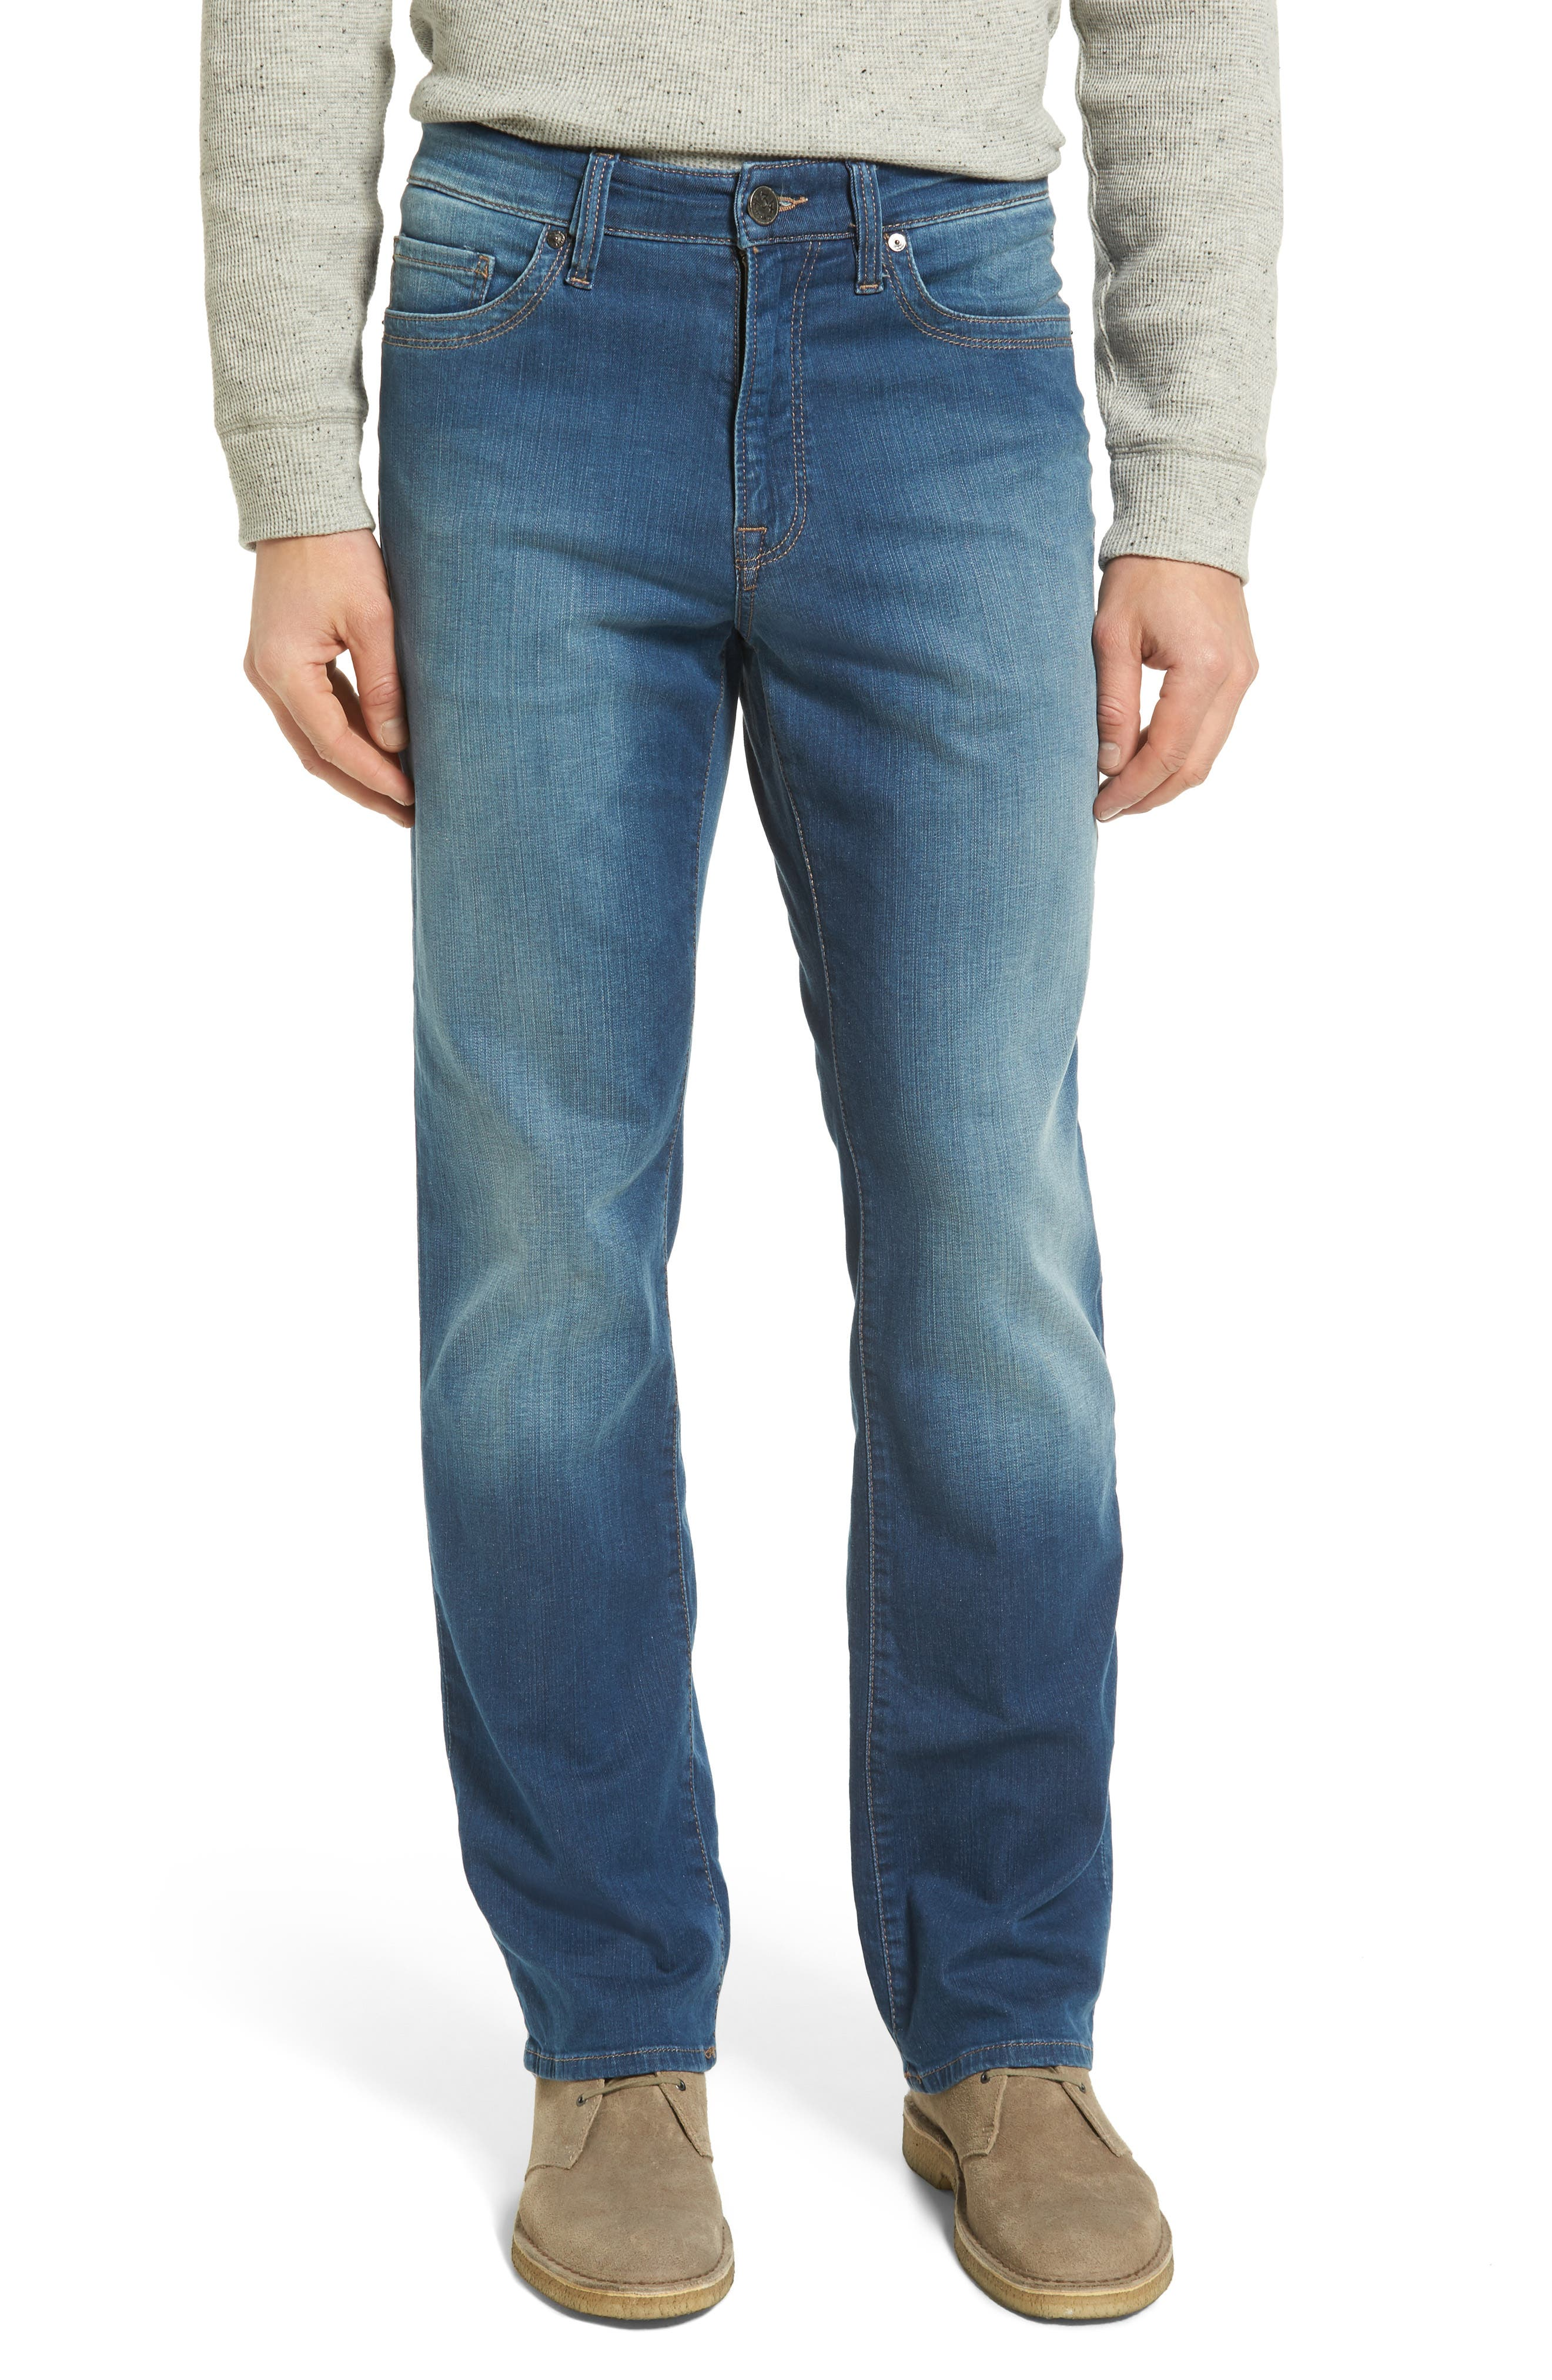 Main Image - 34 Heritage 'Charisma' Classic Relaxed Fit Jeans (Mid Cashmere) (Online Only) (Regular & Tall)